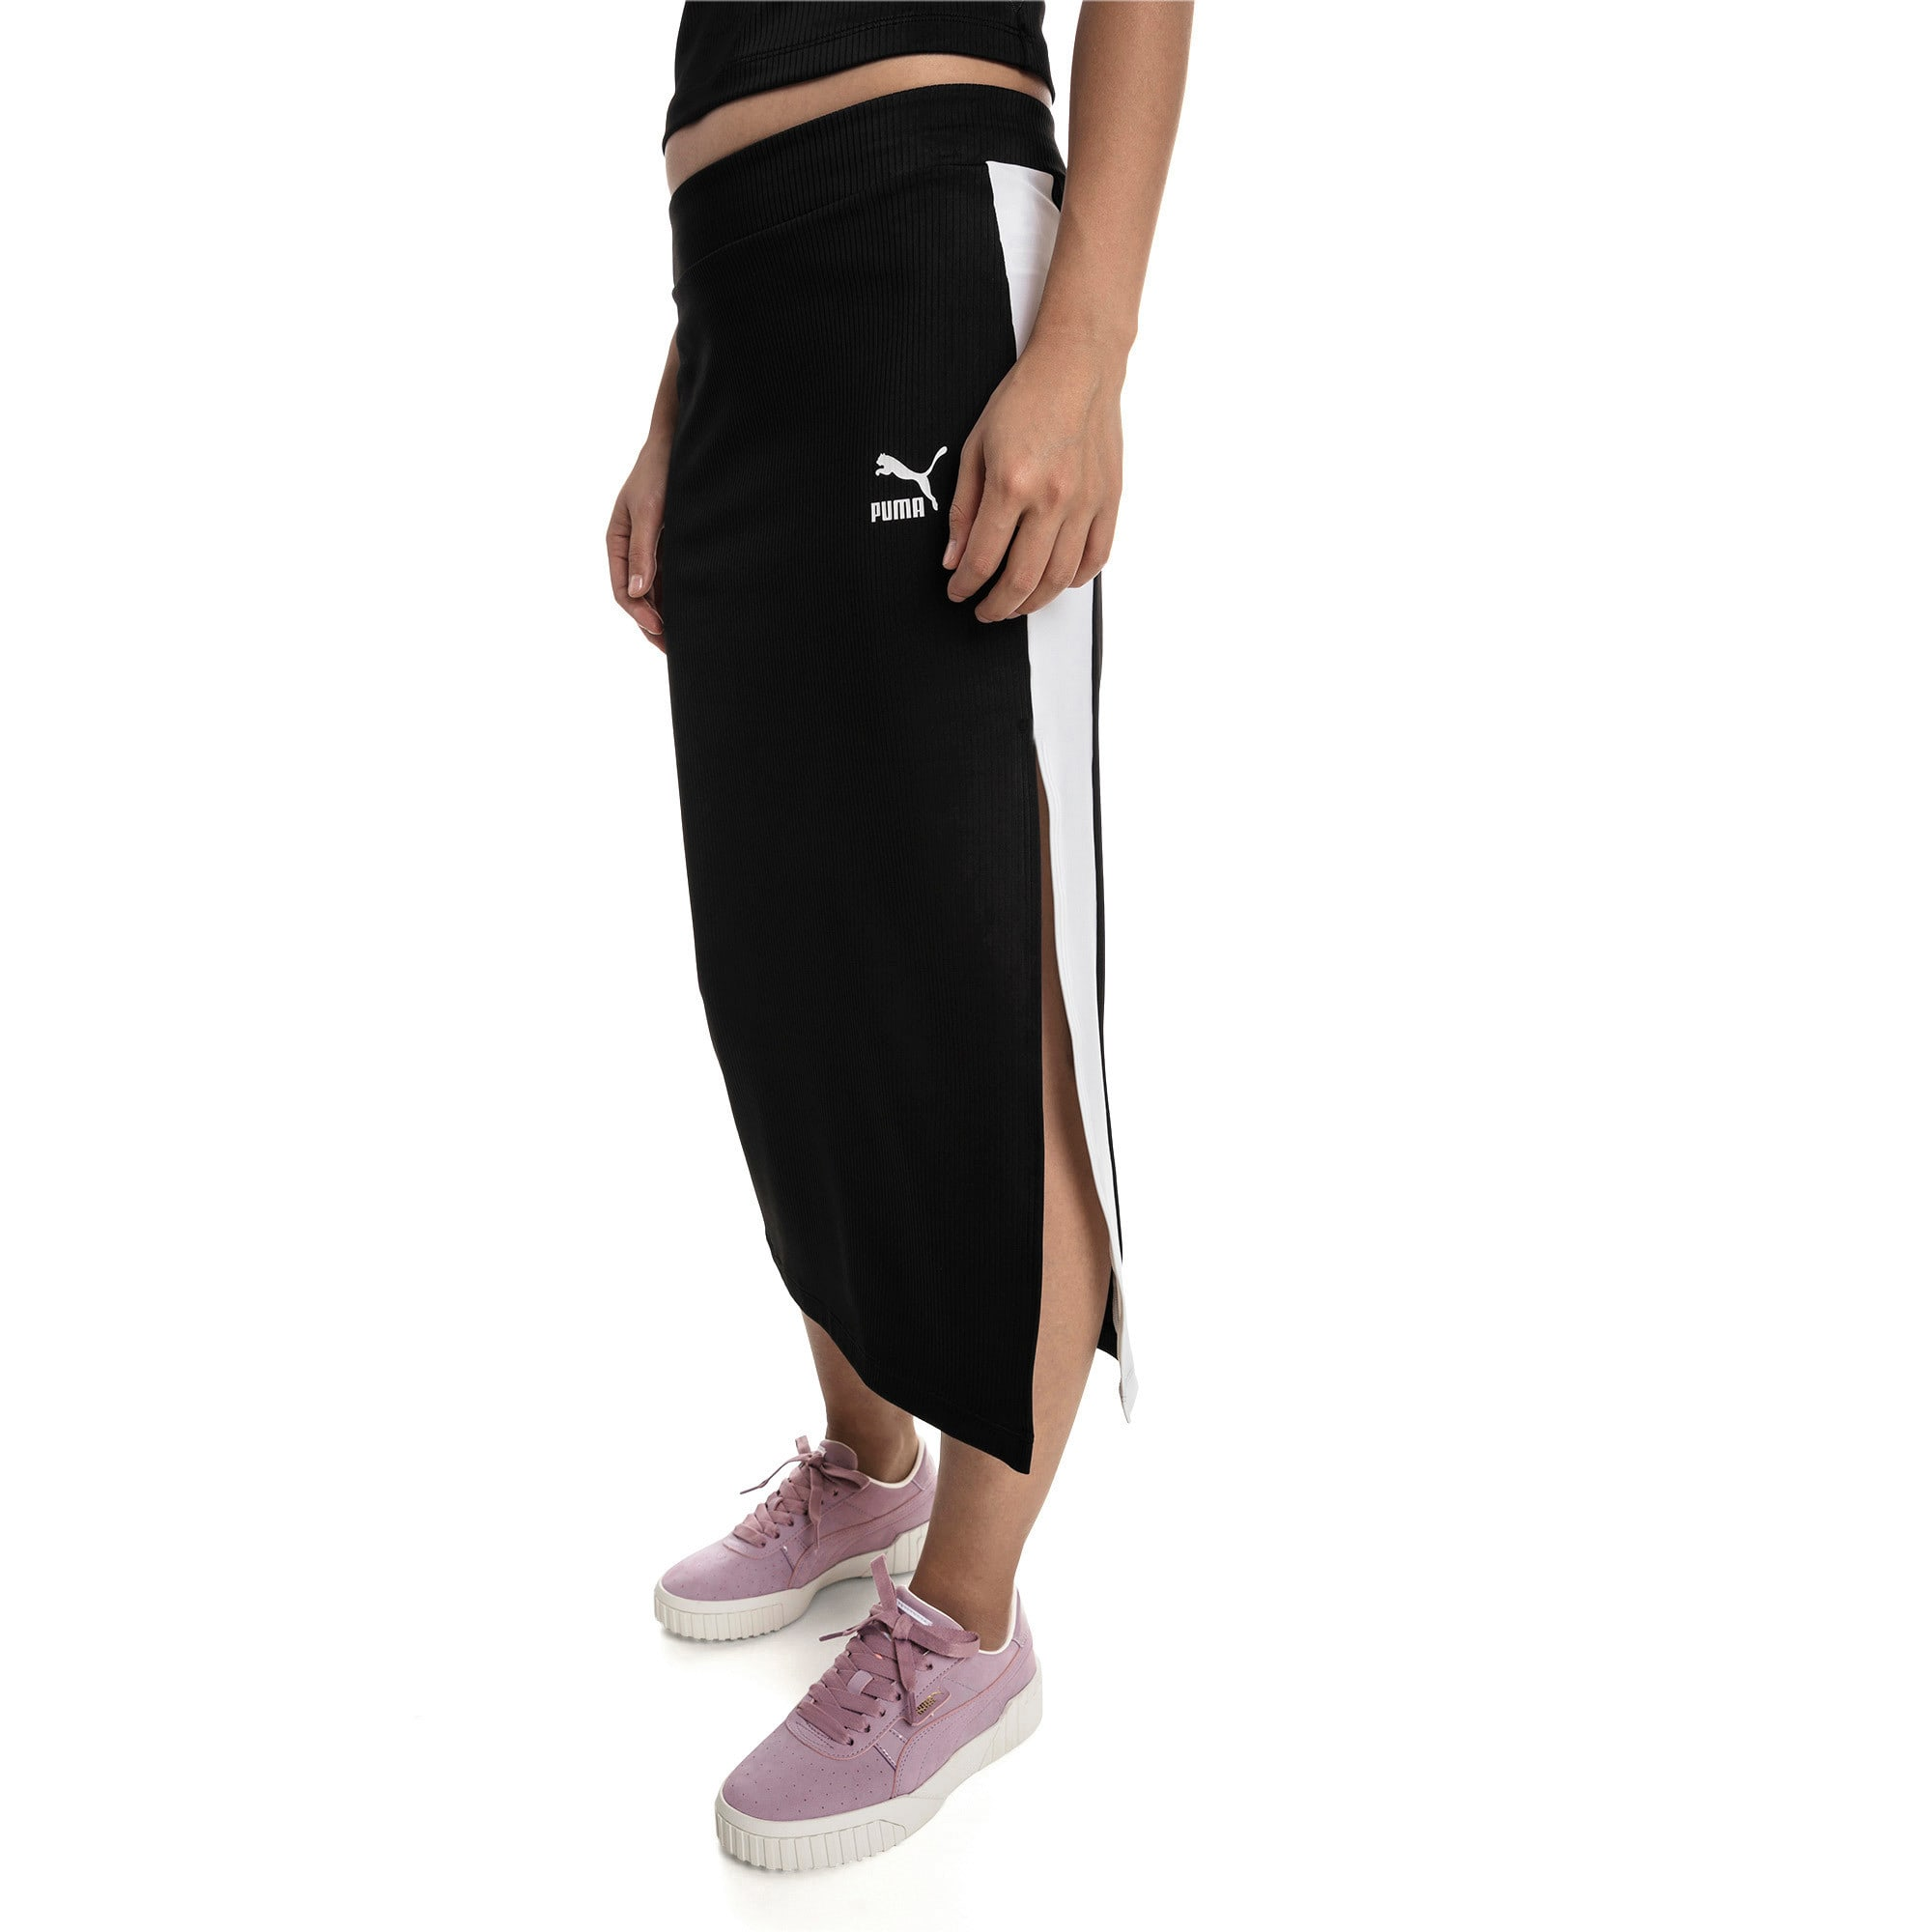 Thumbnail 1 of Jupe Classics pour femme, Puma Black, medium